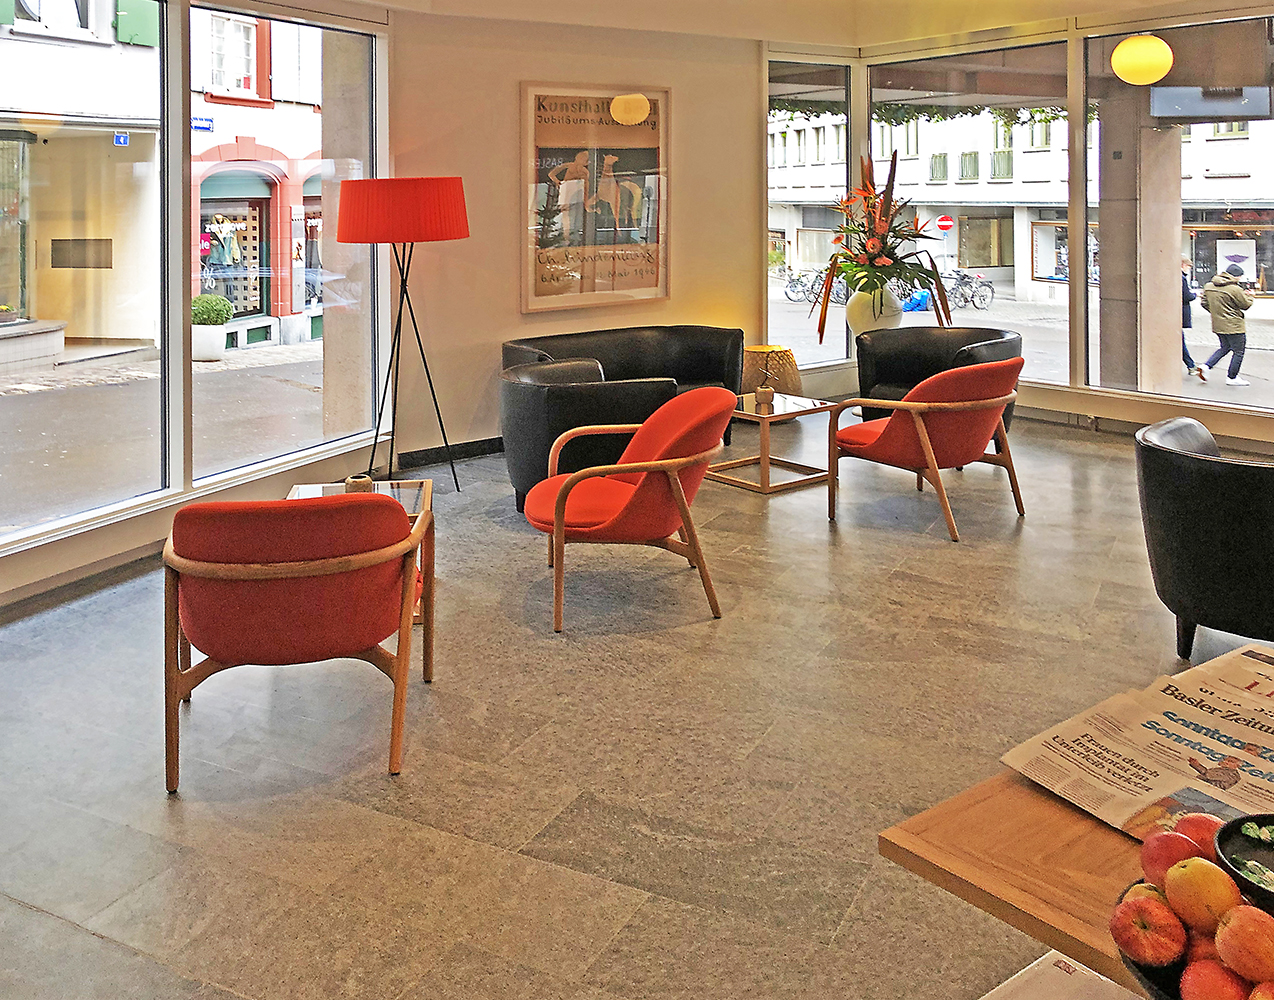 Hotel lobby with red chairs and large windows looking out on the street in Basel Switzerland Architectural Photography